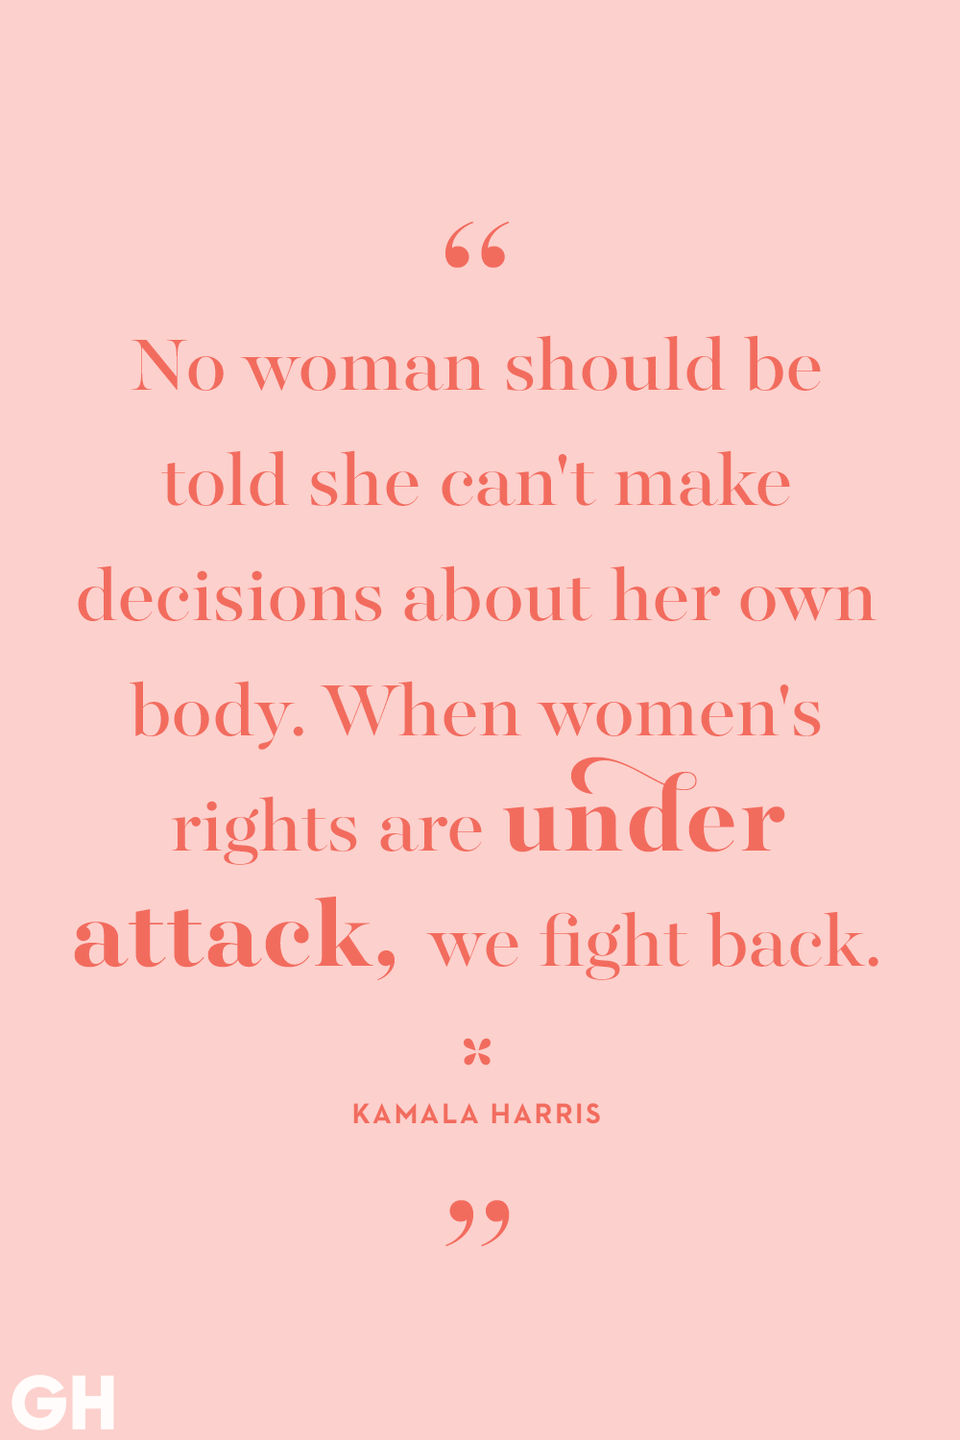 <p>No woman should be told she can't make decisions about her own body. When women's rights are under attack, we fight back.</p>